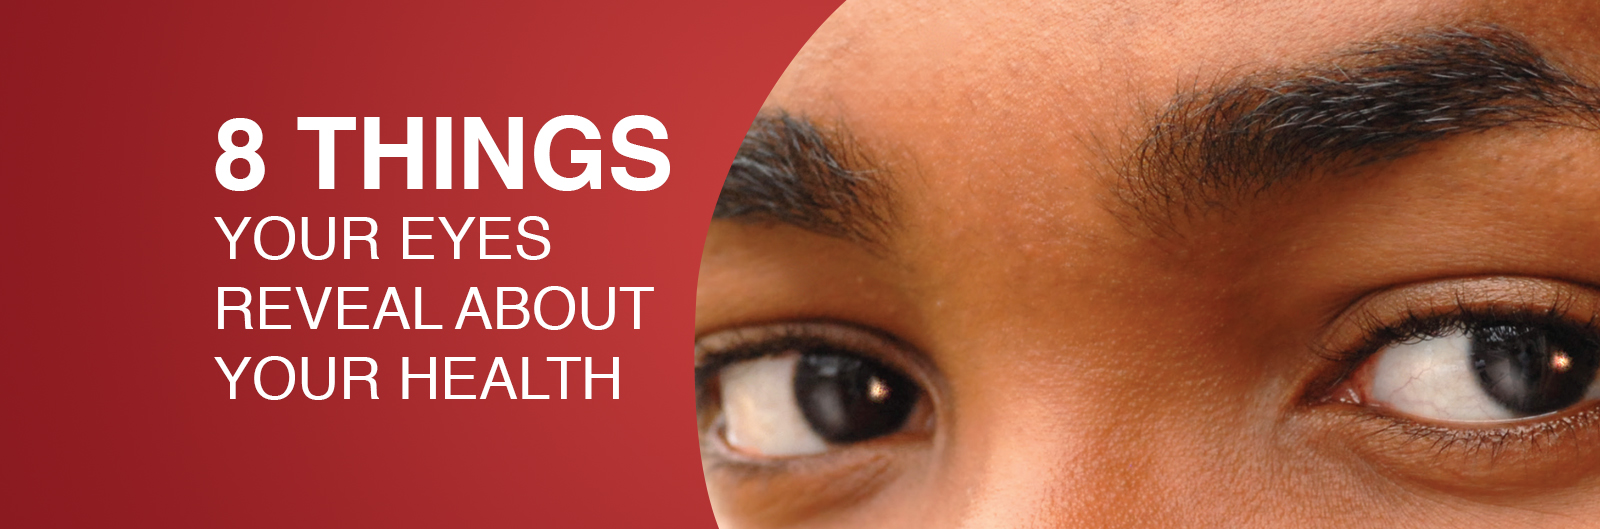 Courts Optical Dominica | Vision Check Up & Eye Care Services In Dominica